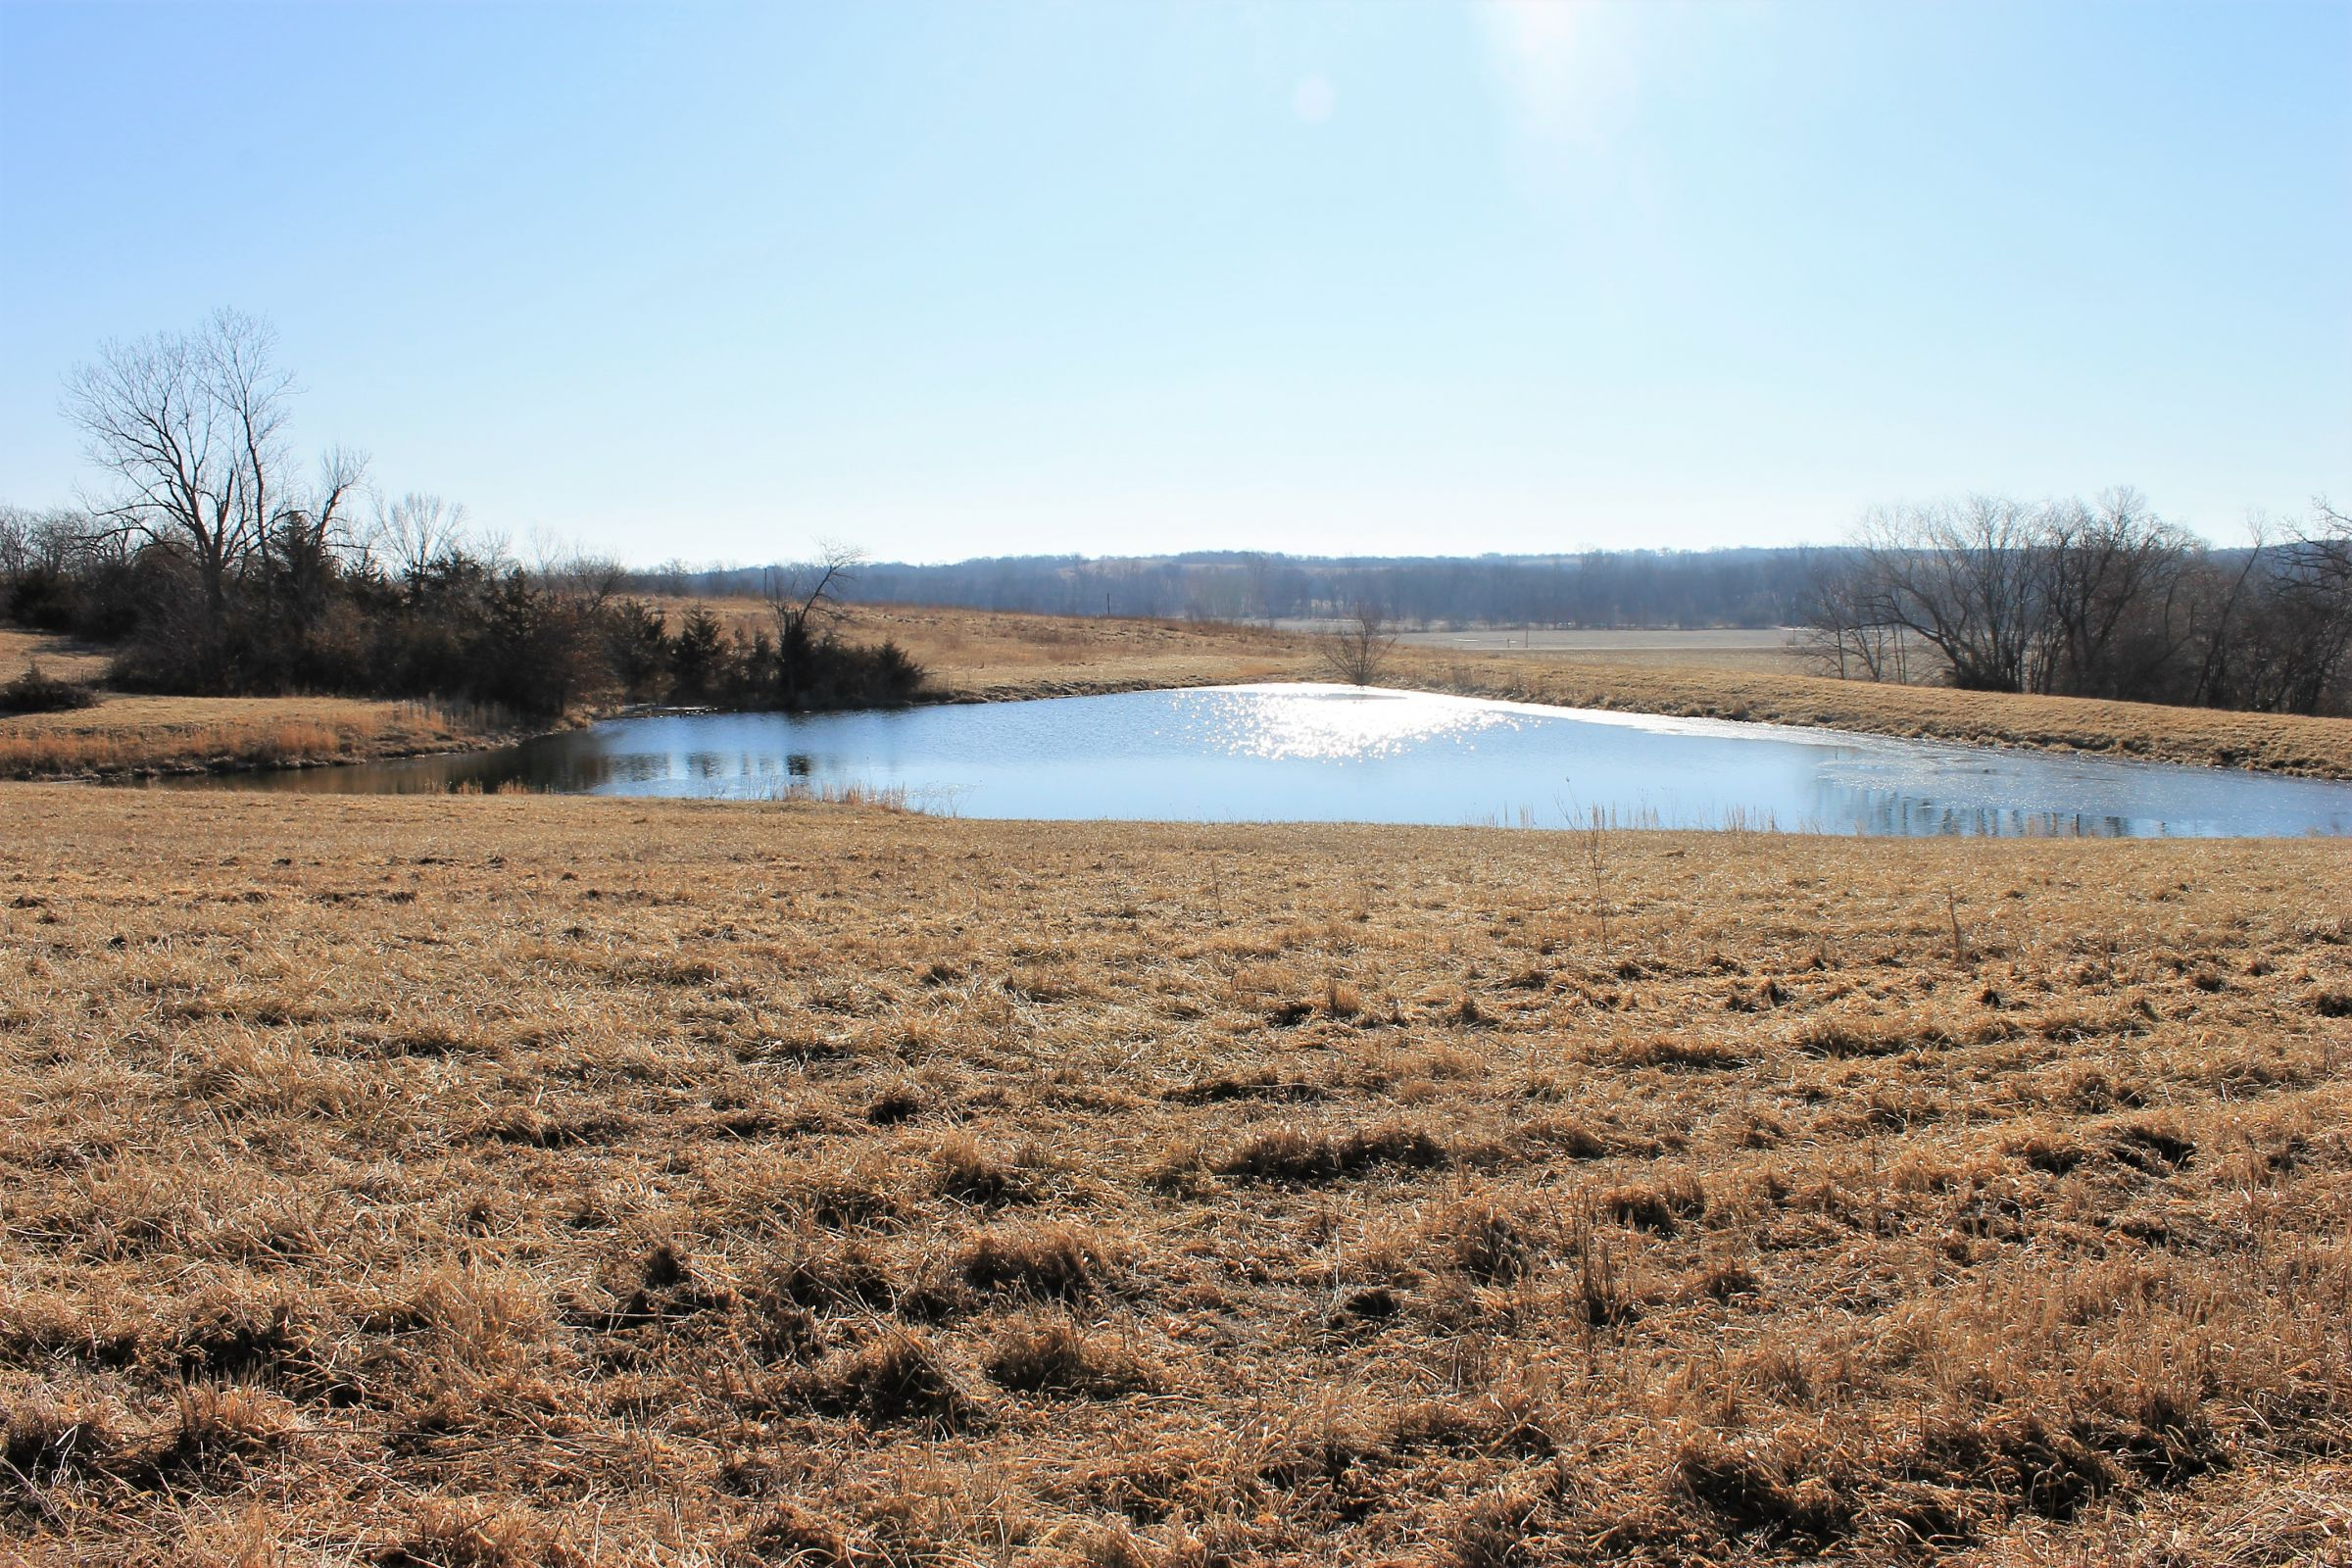 land-gentry-county-missouri-40-acres-listing-number-15397-0-2021-03-09-163946.jpg